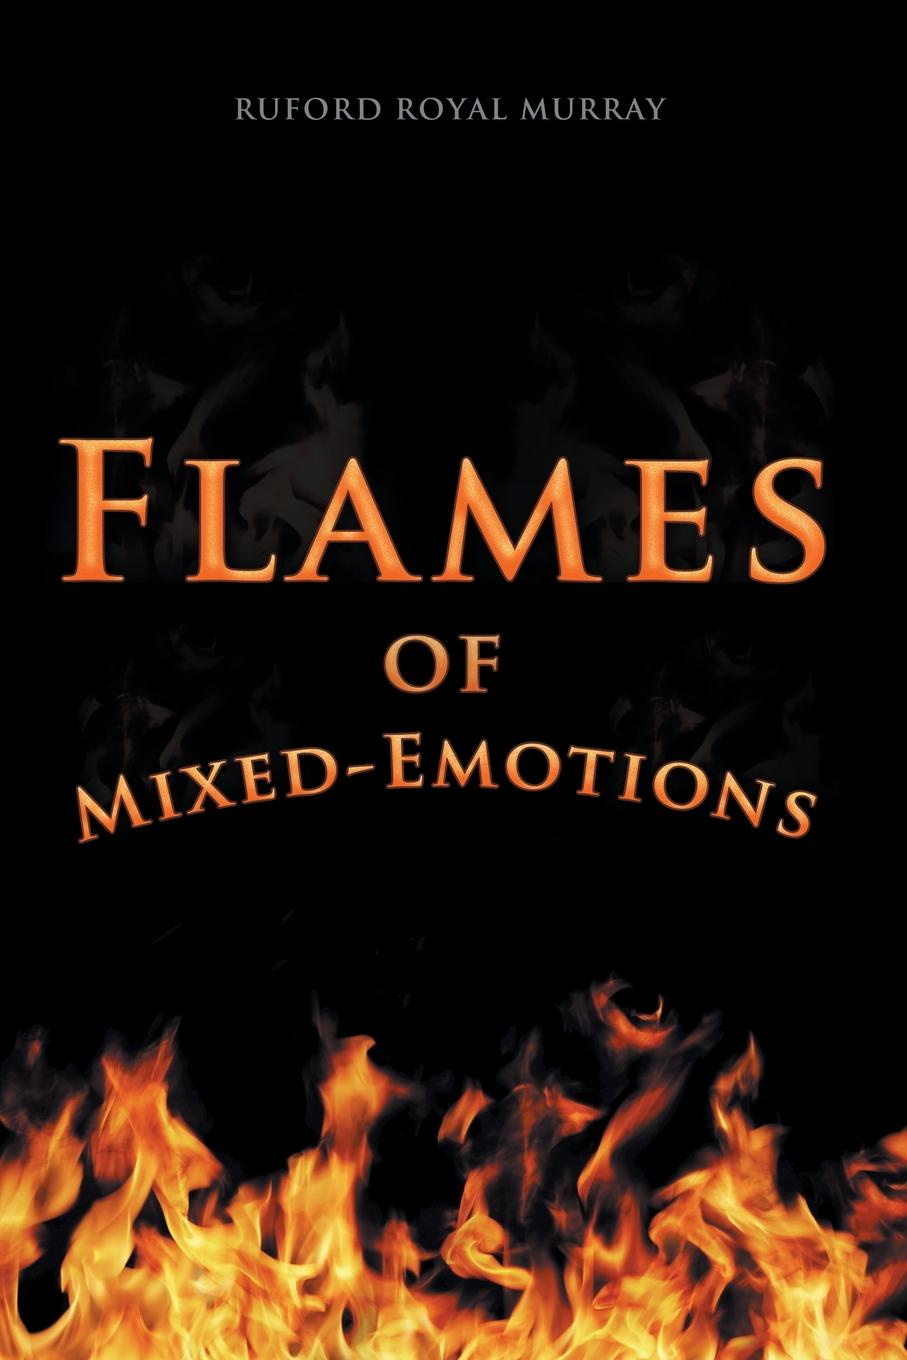 цены Ruford Royal Murray Flames of Mixed-Emotions